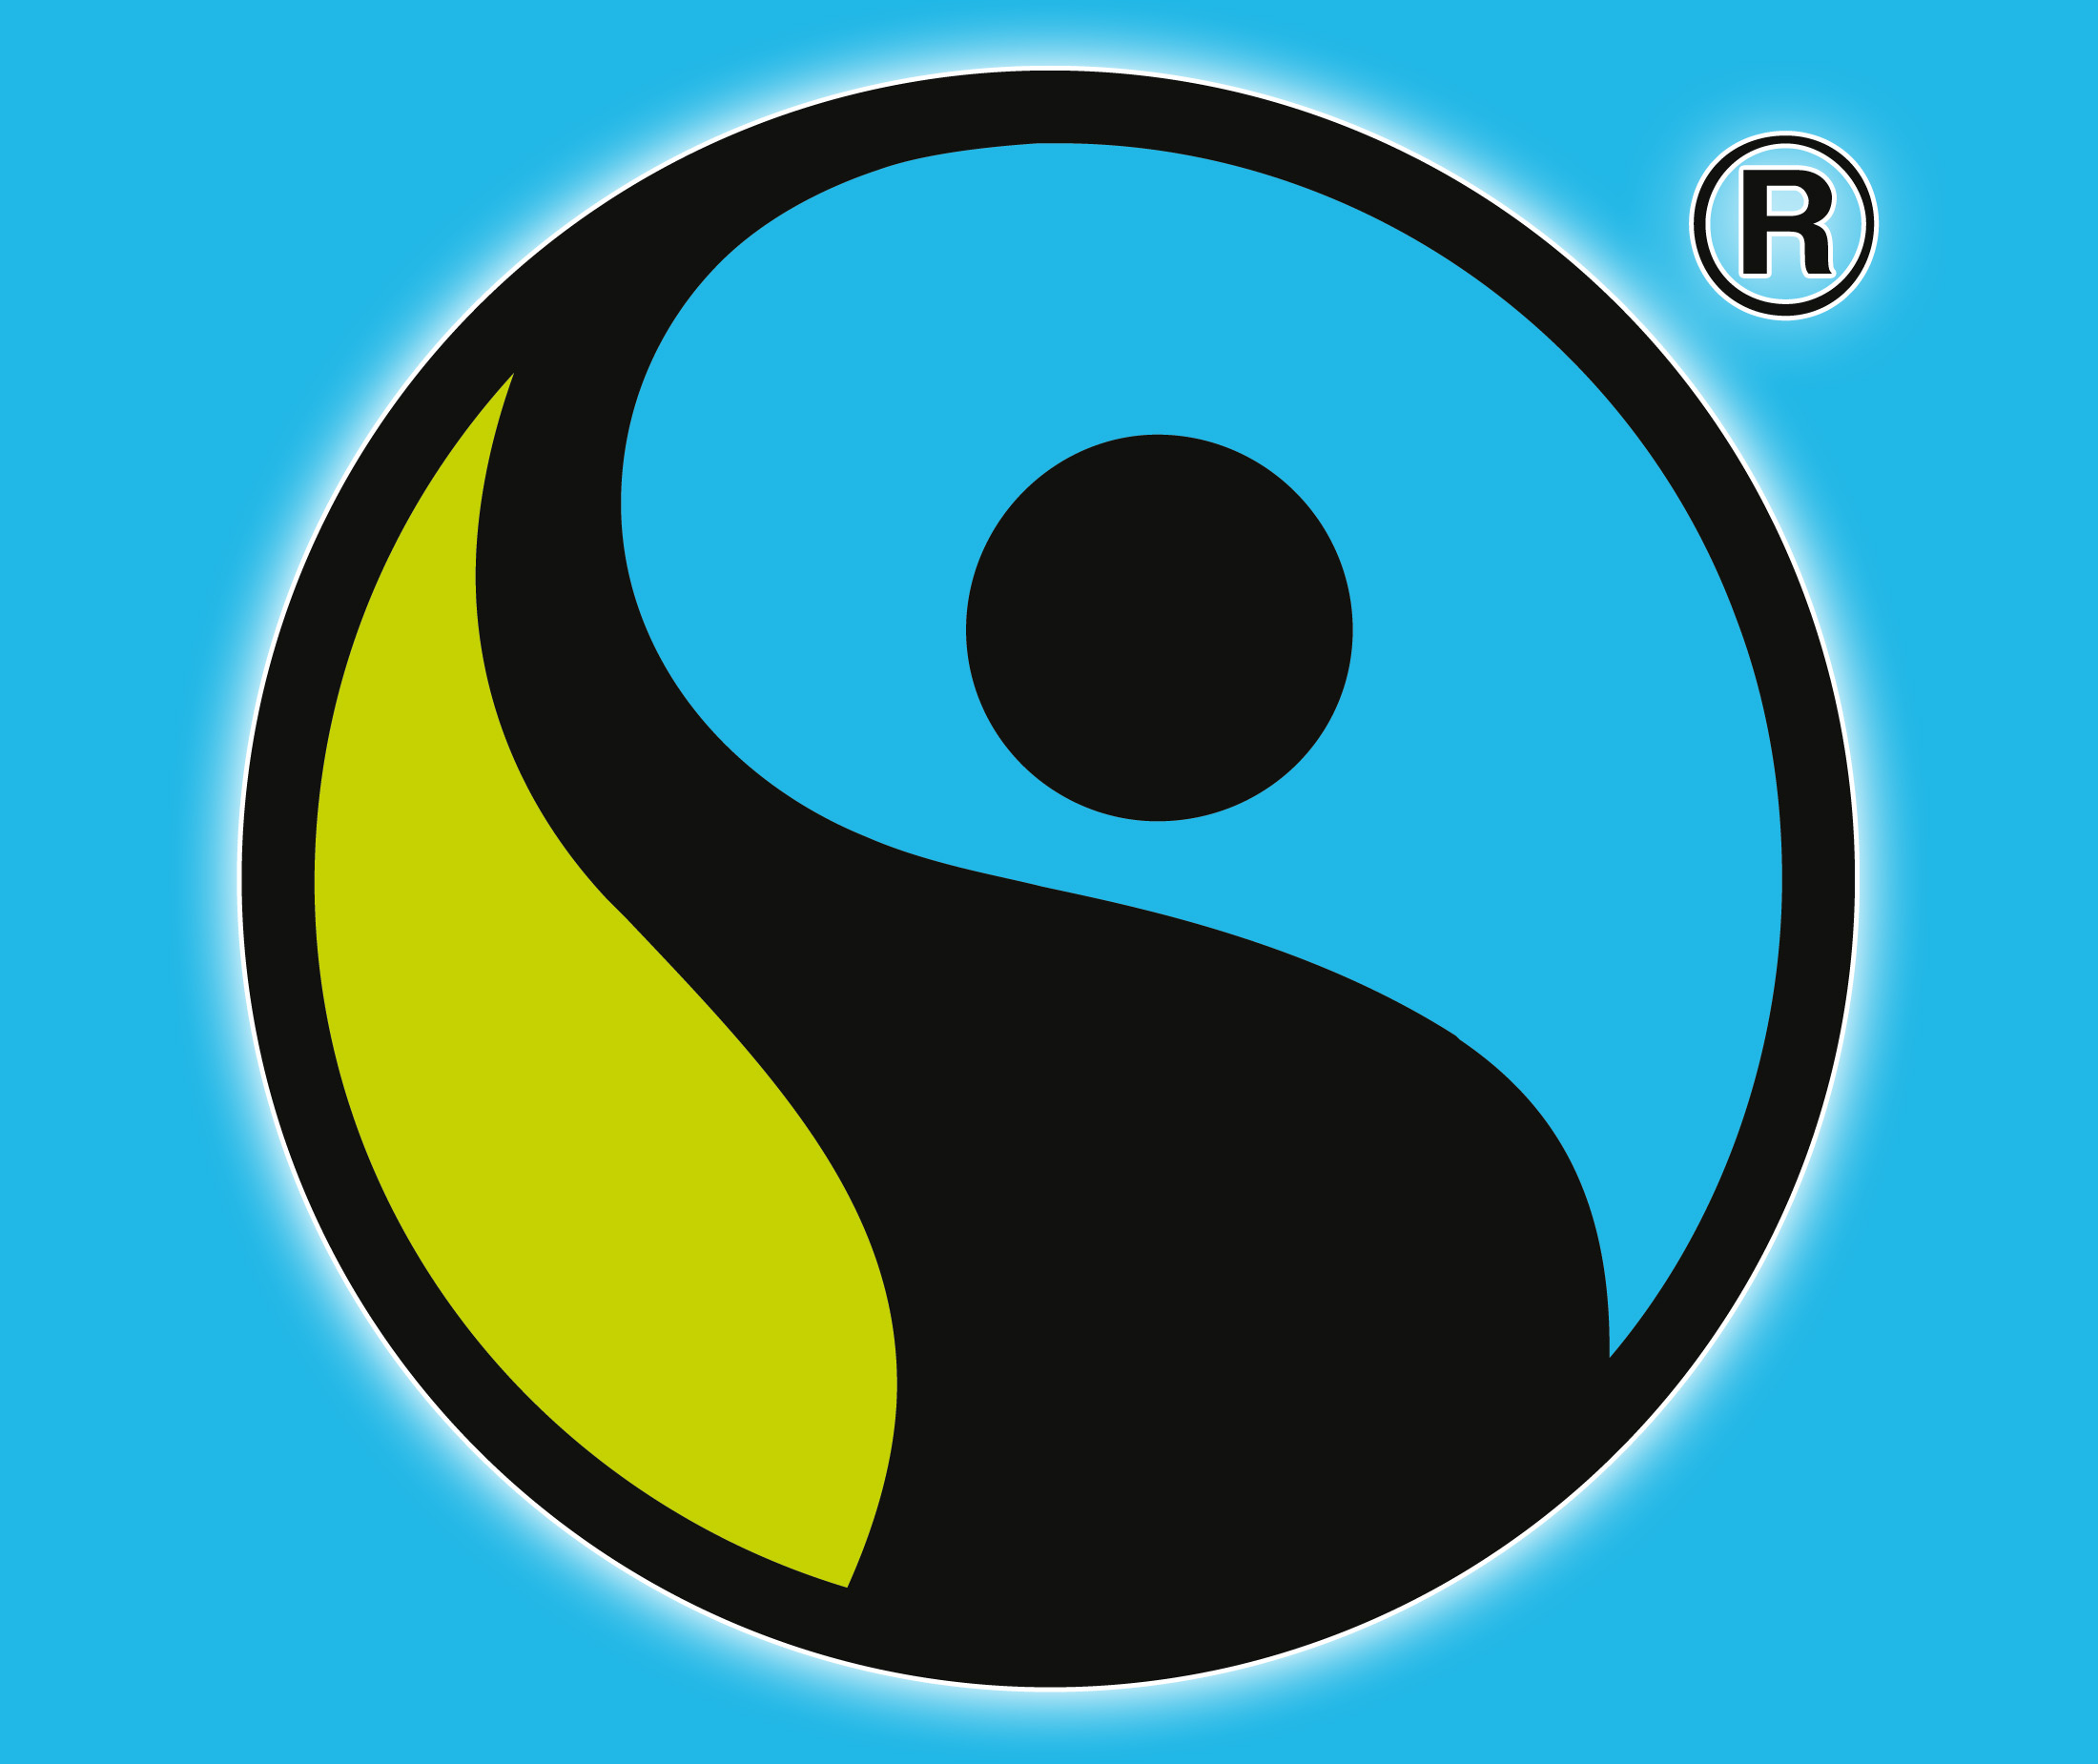 fairtrade logo fairtrade symbol meaning history and